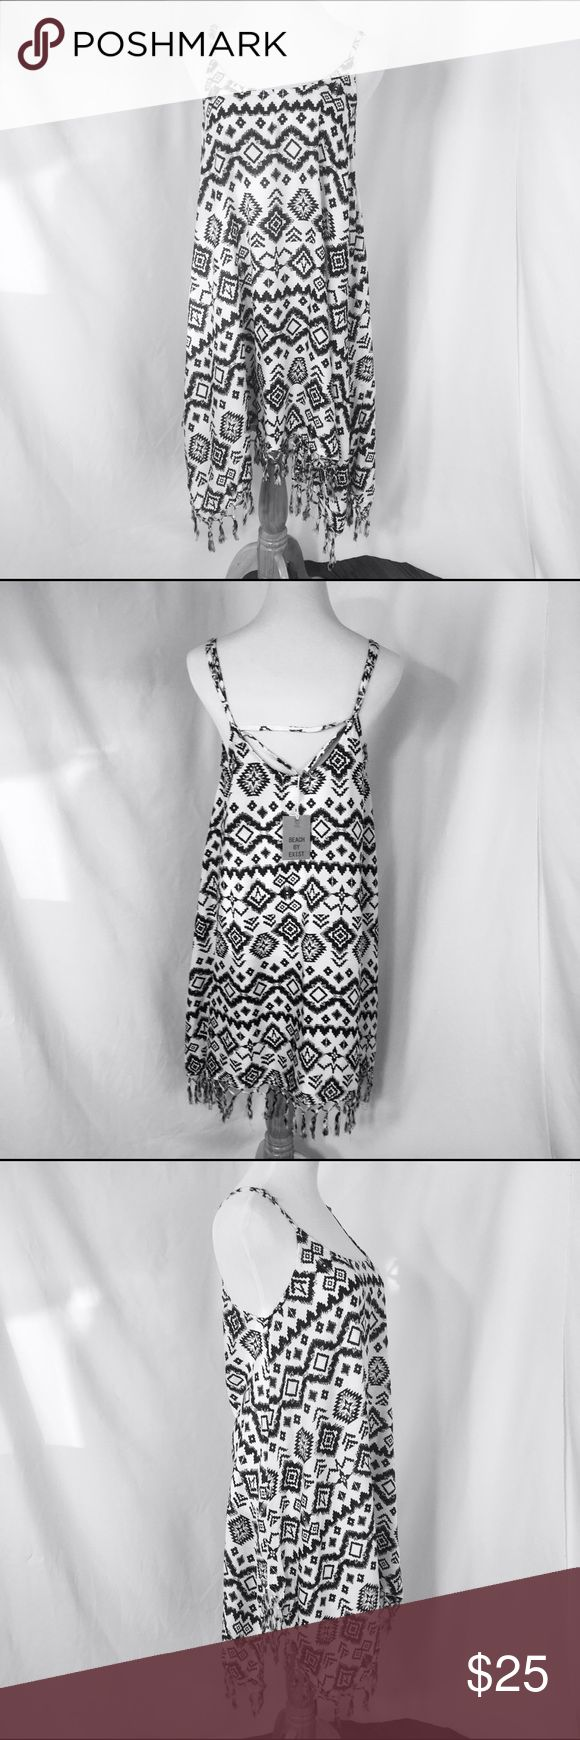 Aztec Print BoHo Cover Up Tunic Dress Aztec Print BoHo Cover Up Tunic Dress with Fringe. Trendy Summer Essential. 100% Rayon Beach By Exist Other